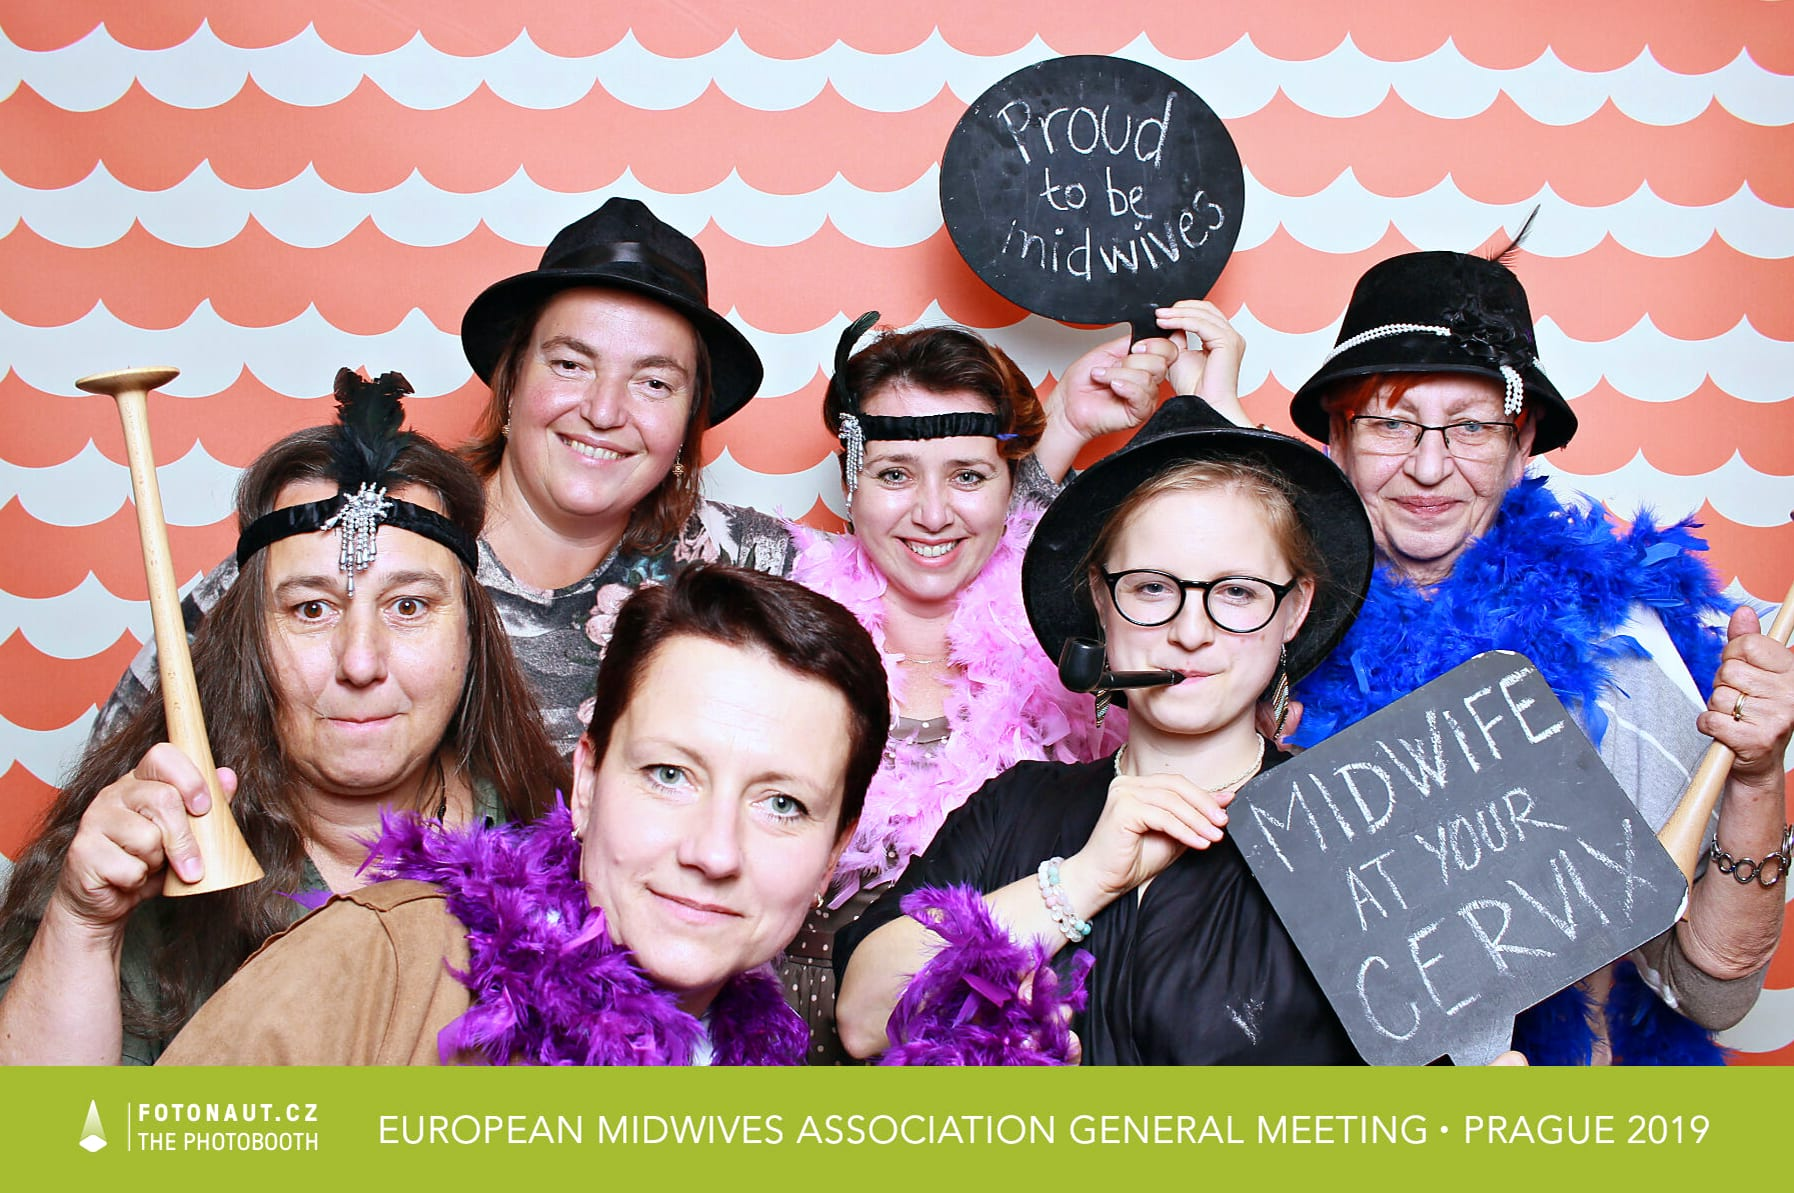 fotokoutek-praha-european-midwives-association-general-meeting-27-9-2019-657705